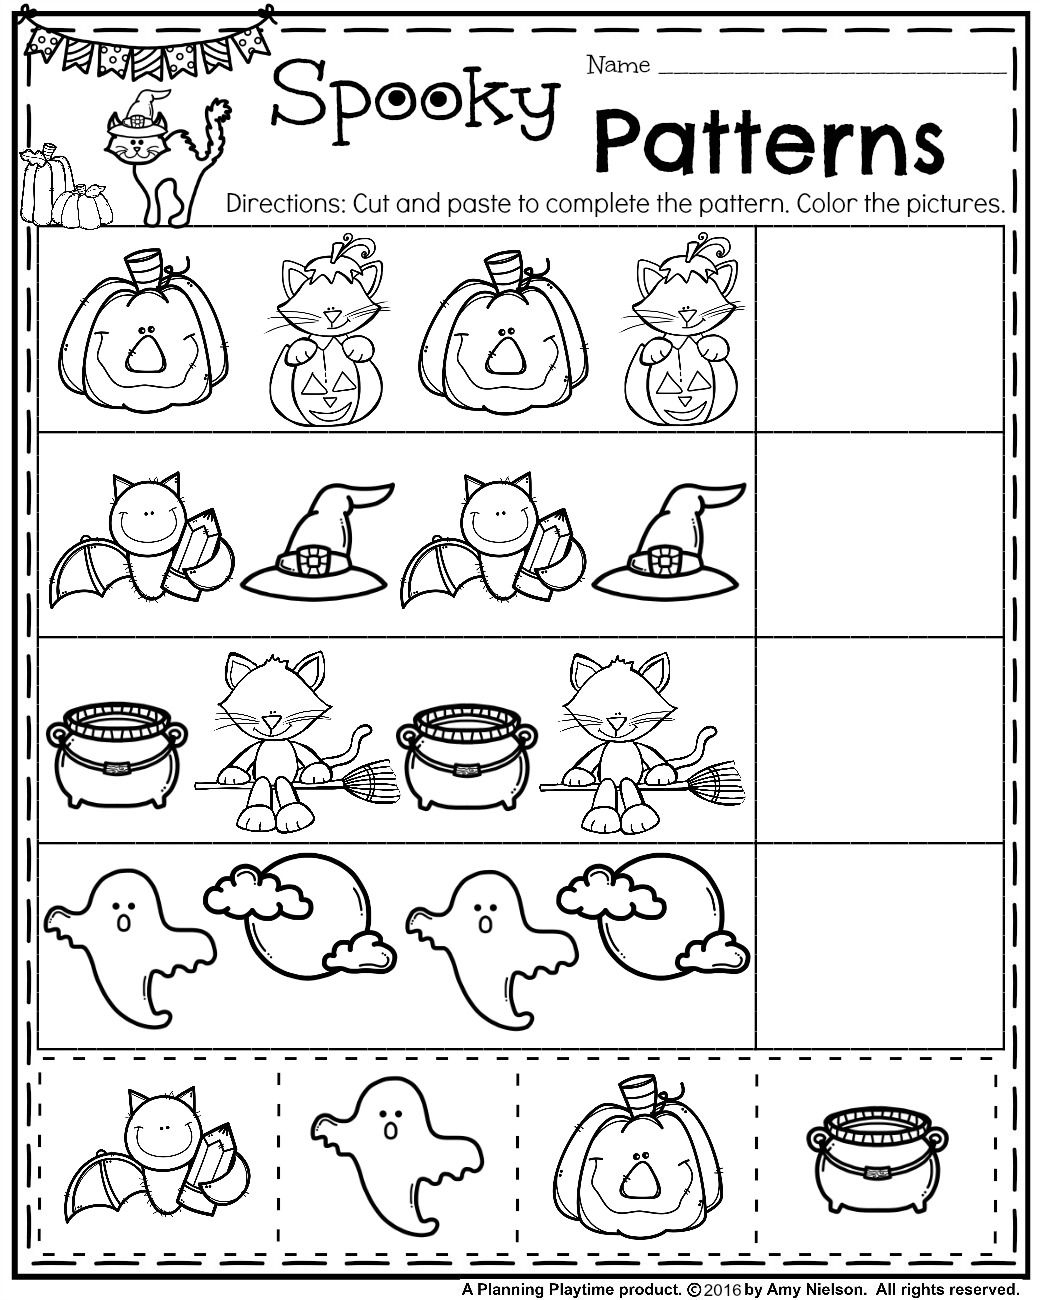 October Preschool Worksheets | Preschool Activities | Preschool | Preschool Halloween Worksheets Printables